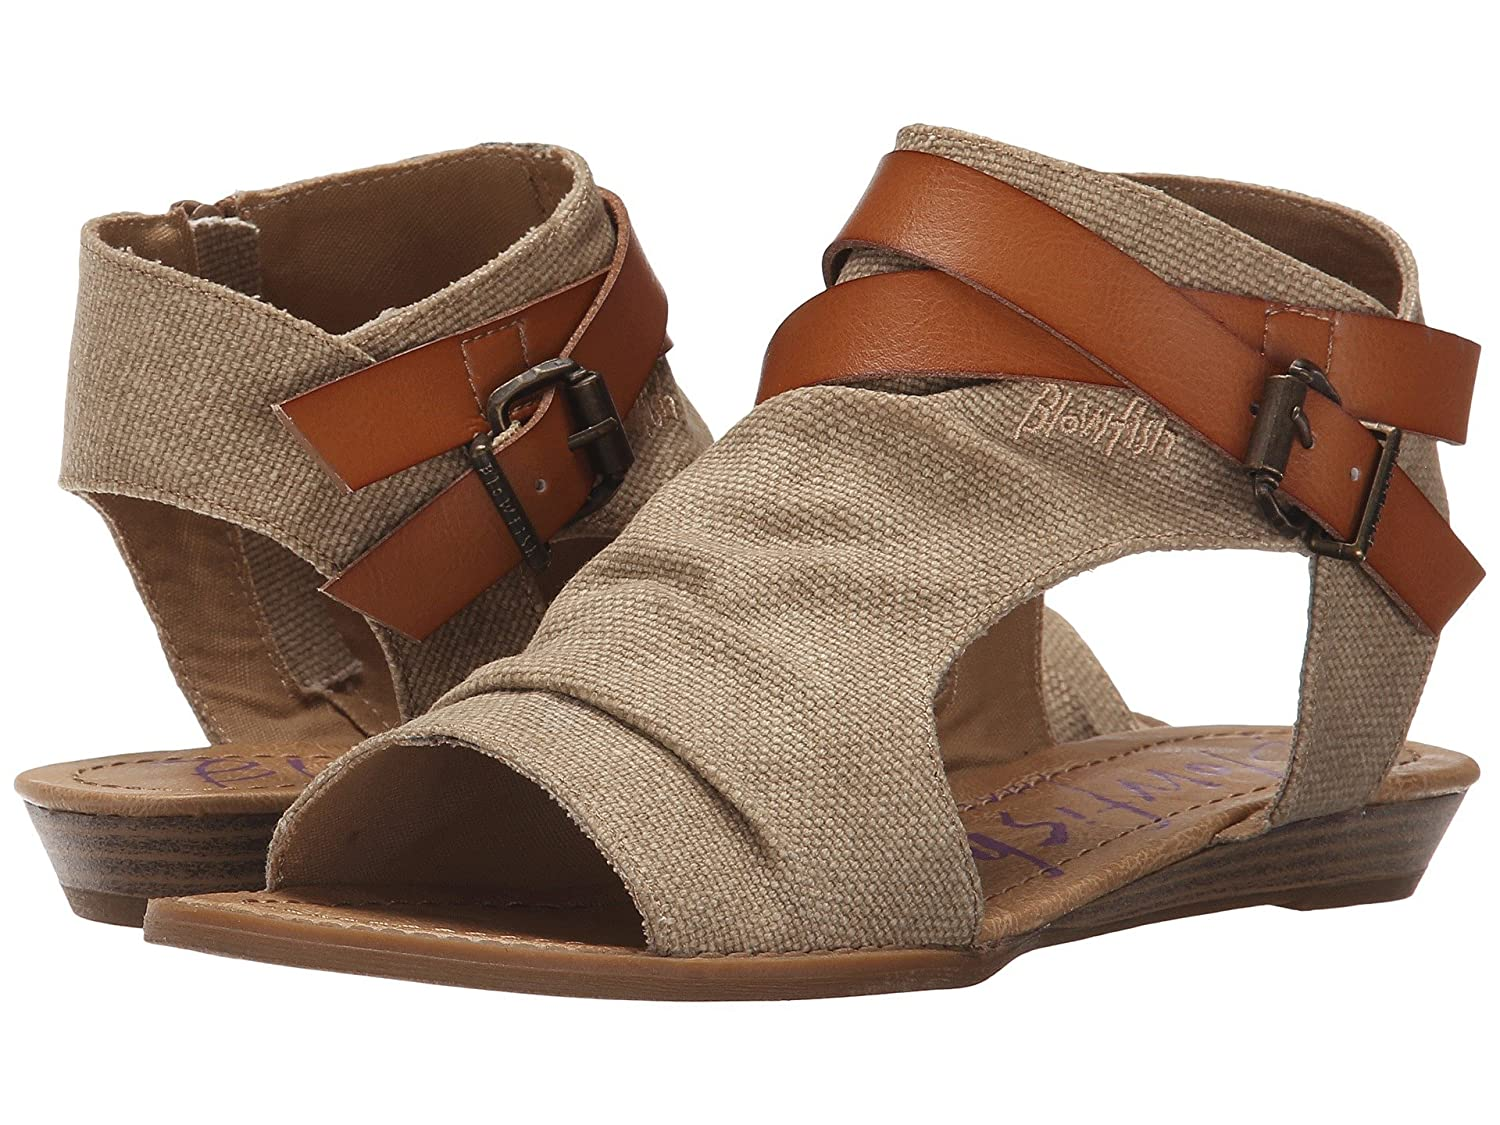 Blowfish Women's Balla Wedge Sandal B07C93P19H 36-37 M EU / 6 B(M) US|Desert Sand Rancher/Canvas-dyecut